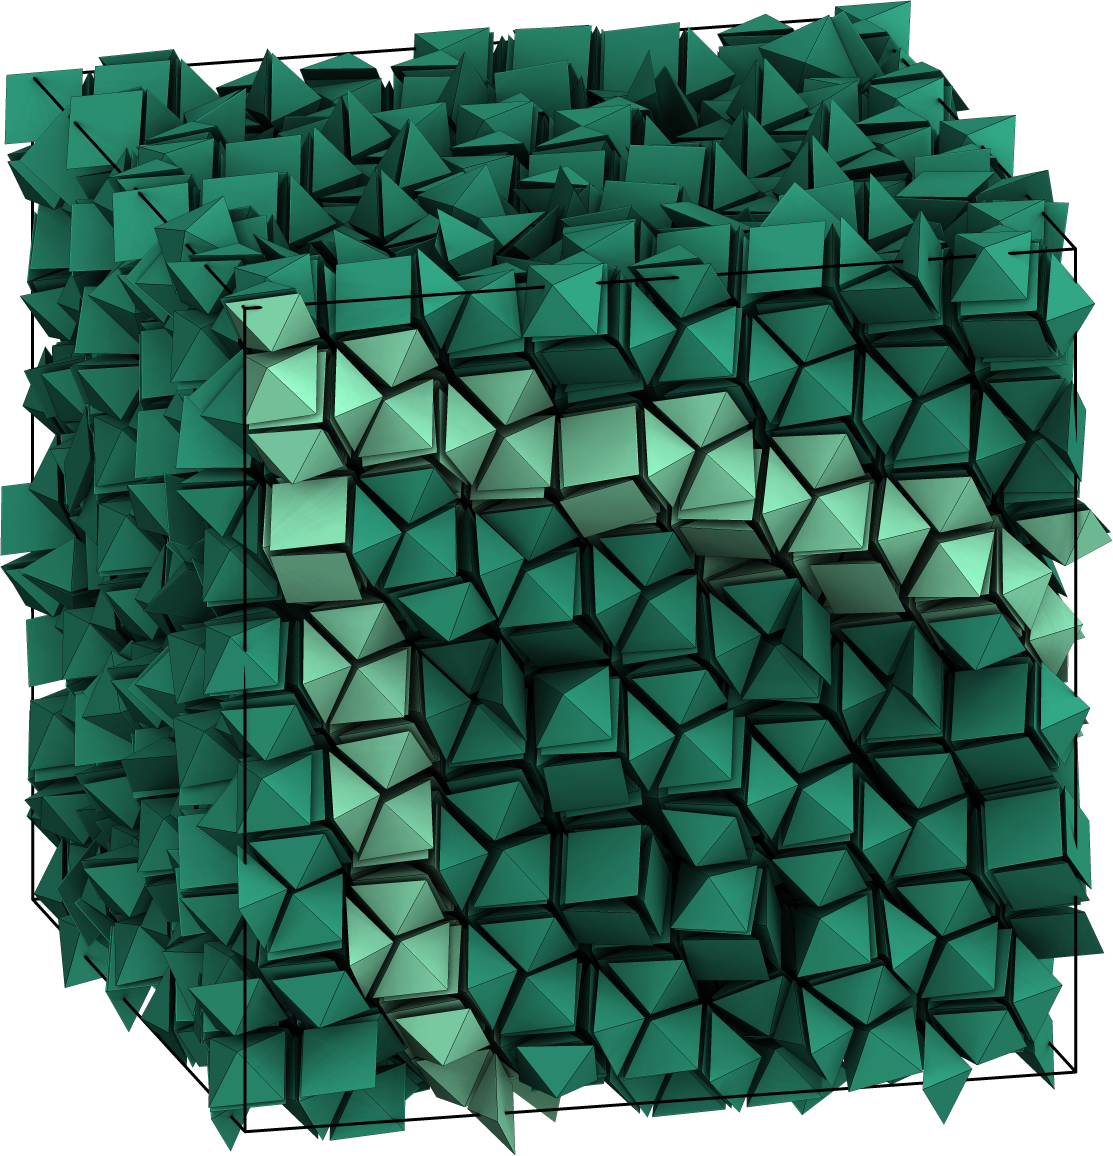 Shapes can arrange themselves into crystal structures through entropy alone, new research from the University of Michigan shows. Image credit: P. Damasceno, M. Engel, S. Glotzer